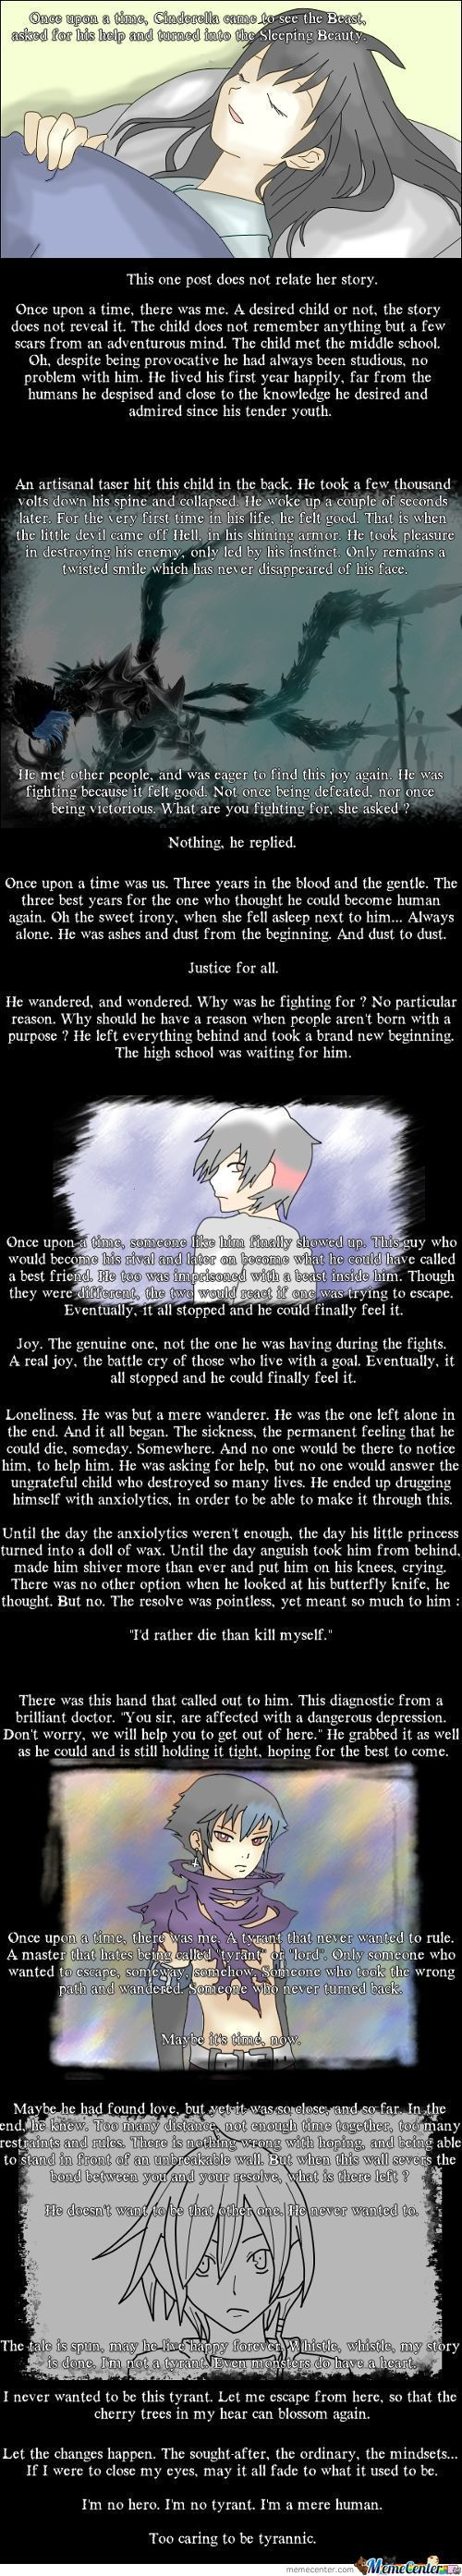 The Final Post ~ Memories Of A Human